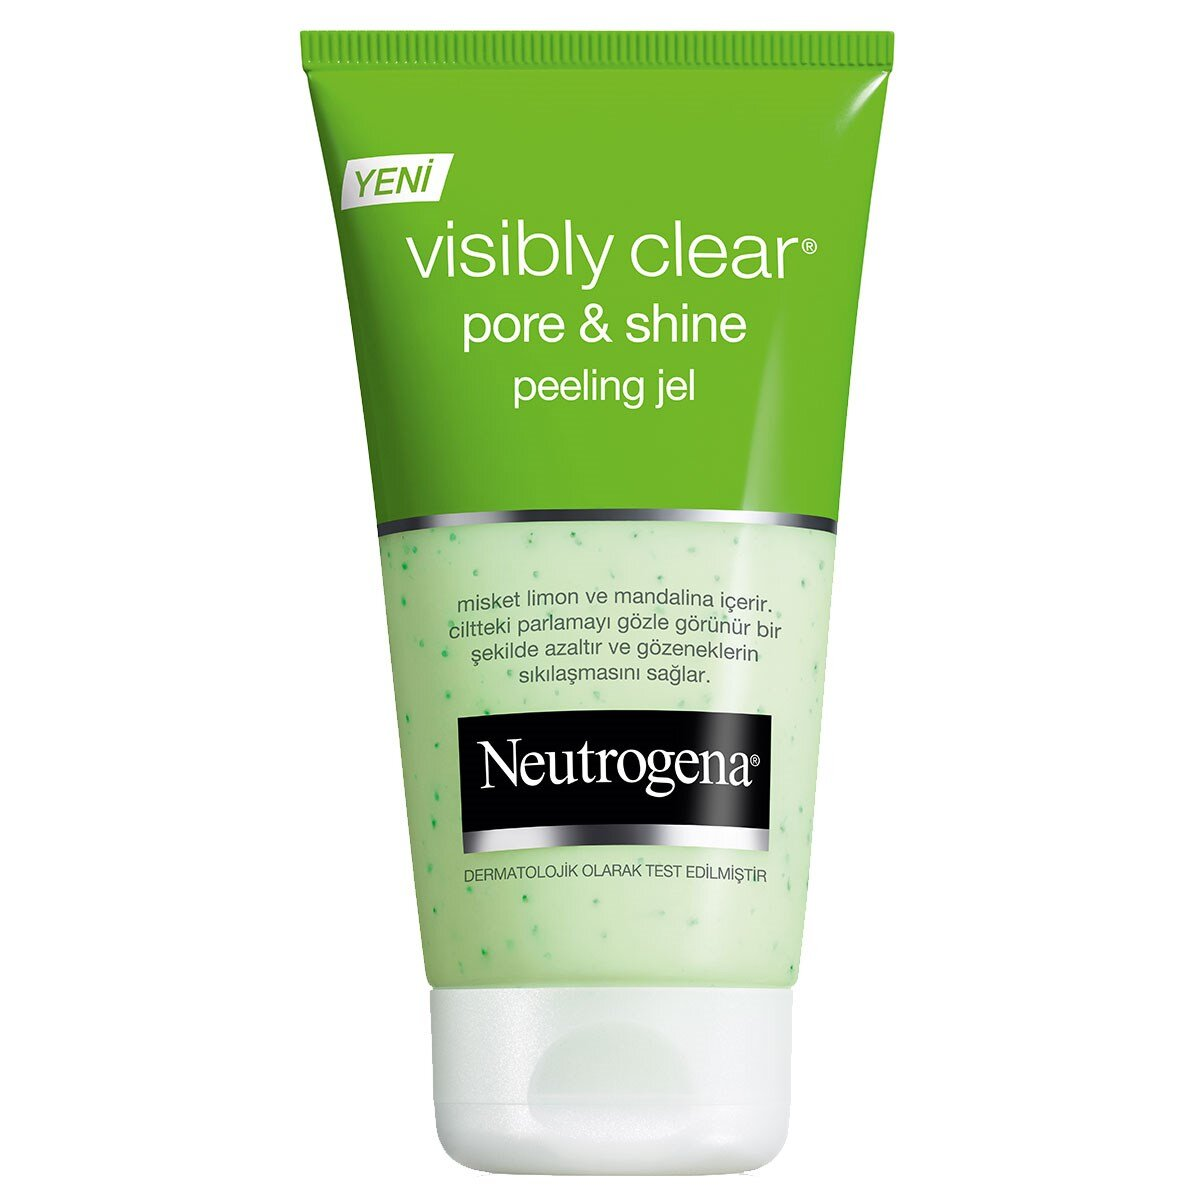 Visibly Clear Pore & Shine Peeling Jel 150M